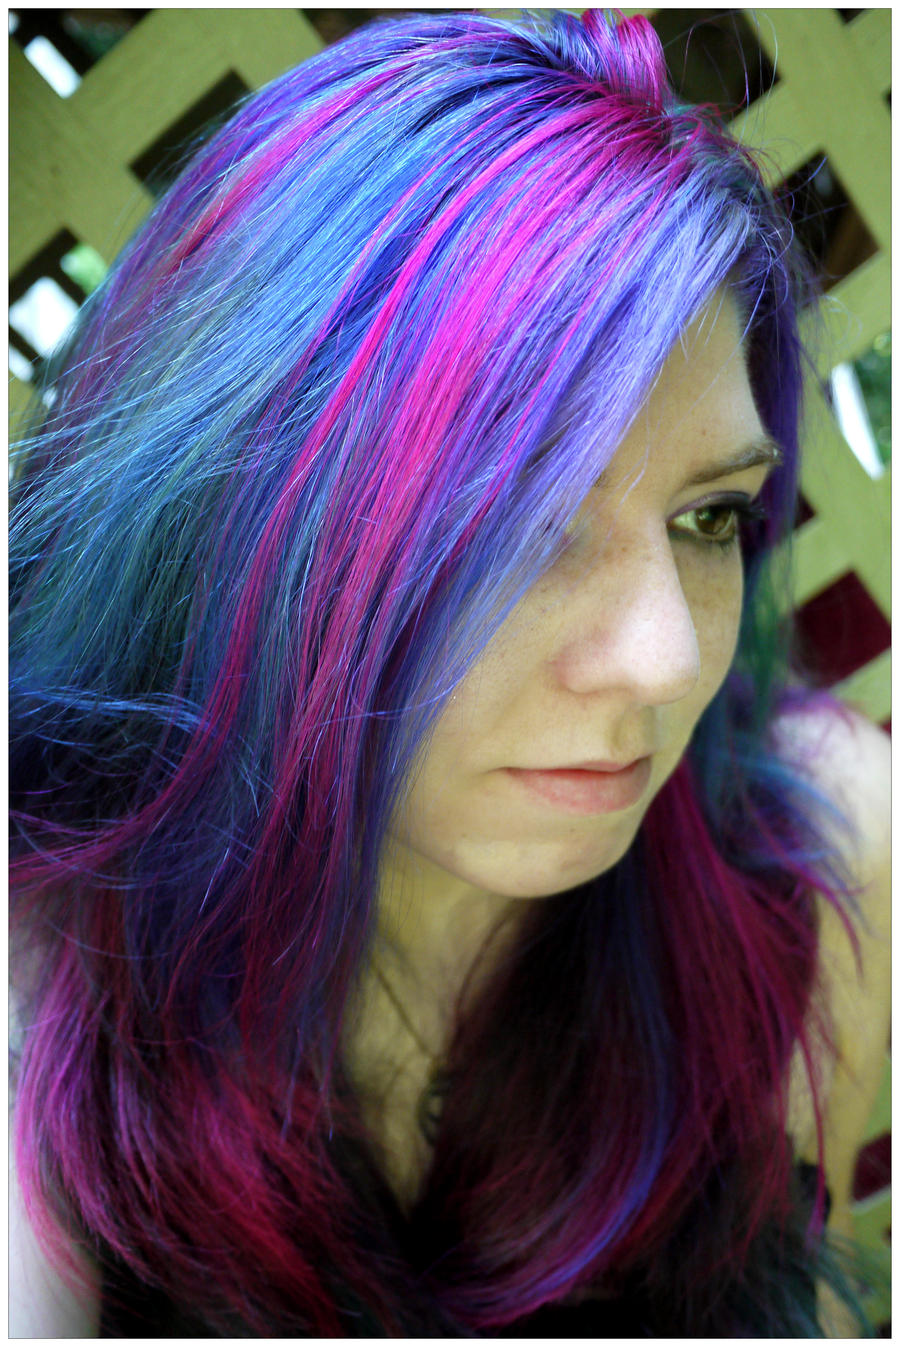 Blue  Purple  Pink By Lizzysphotos On DeviantArt